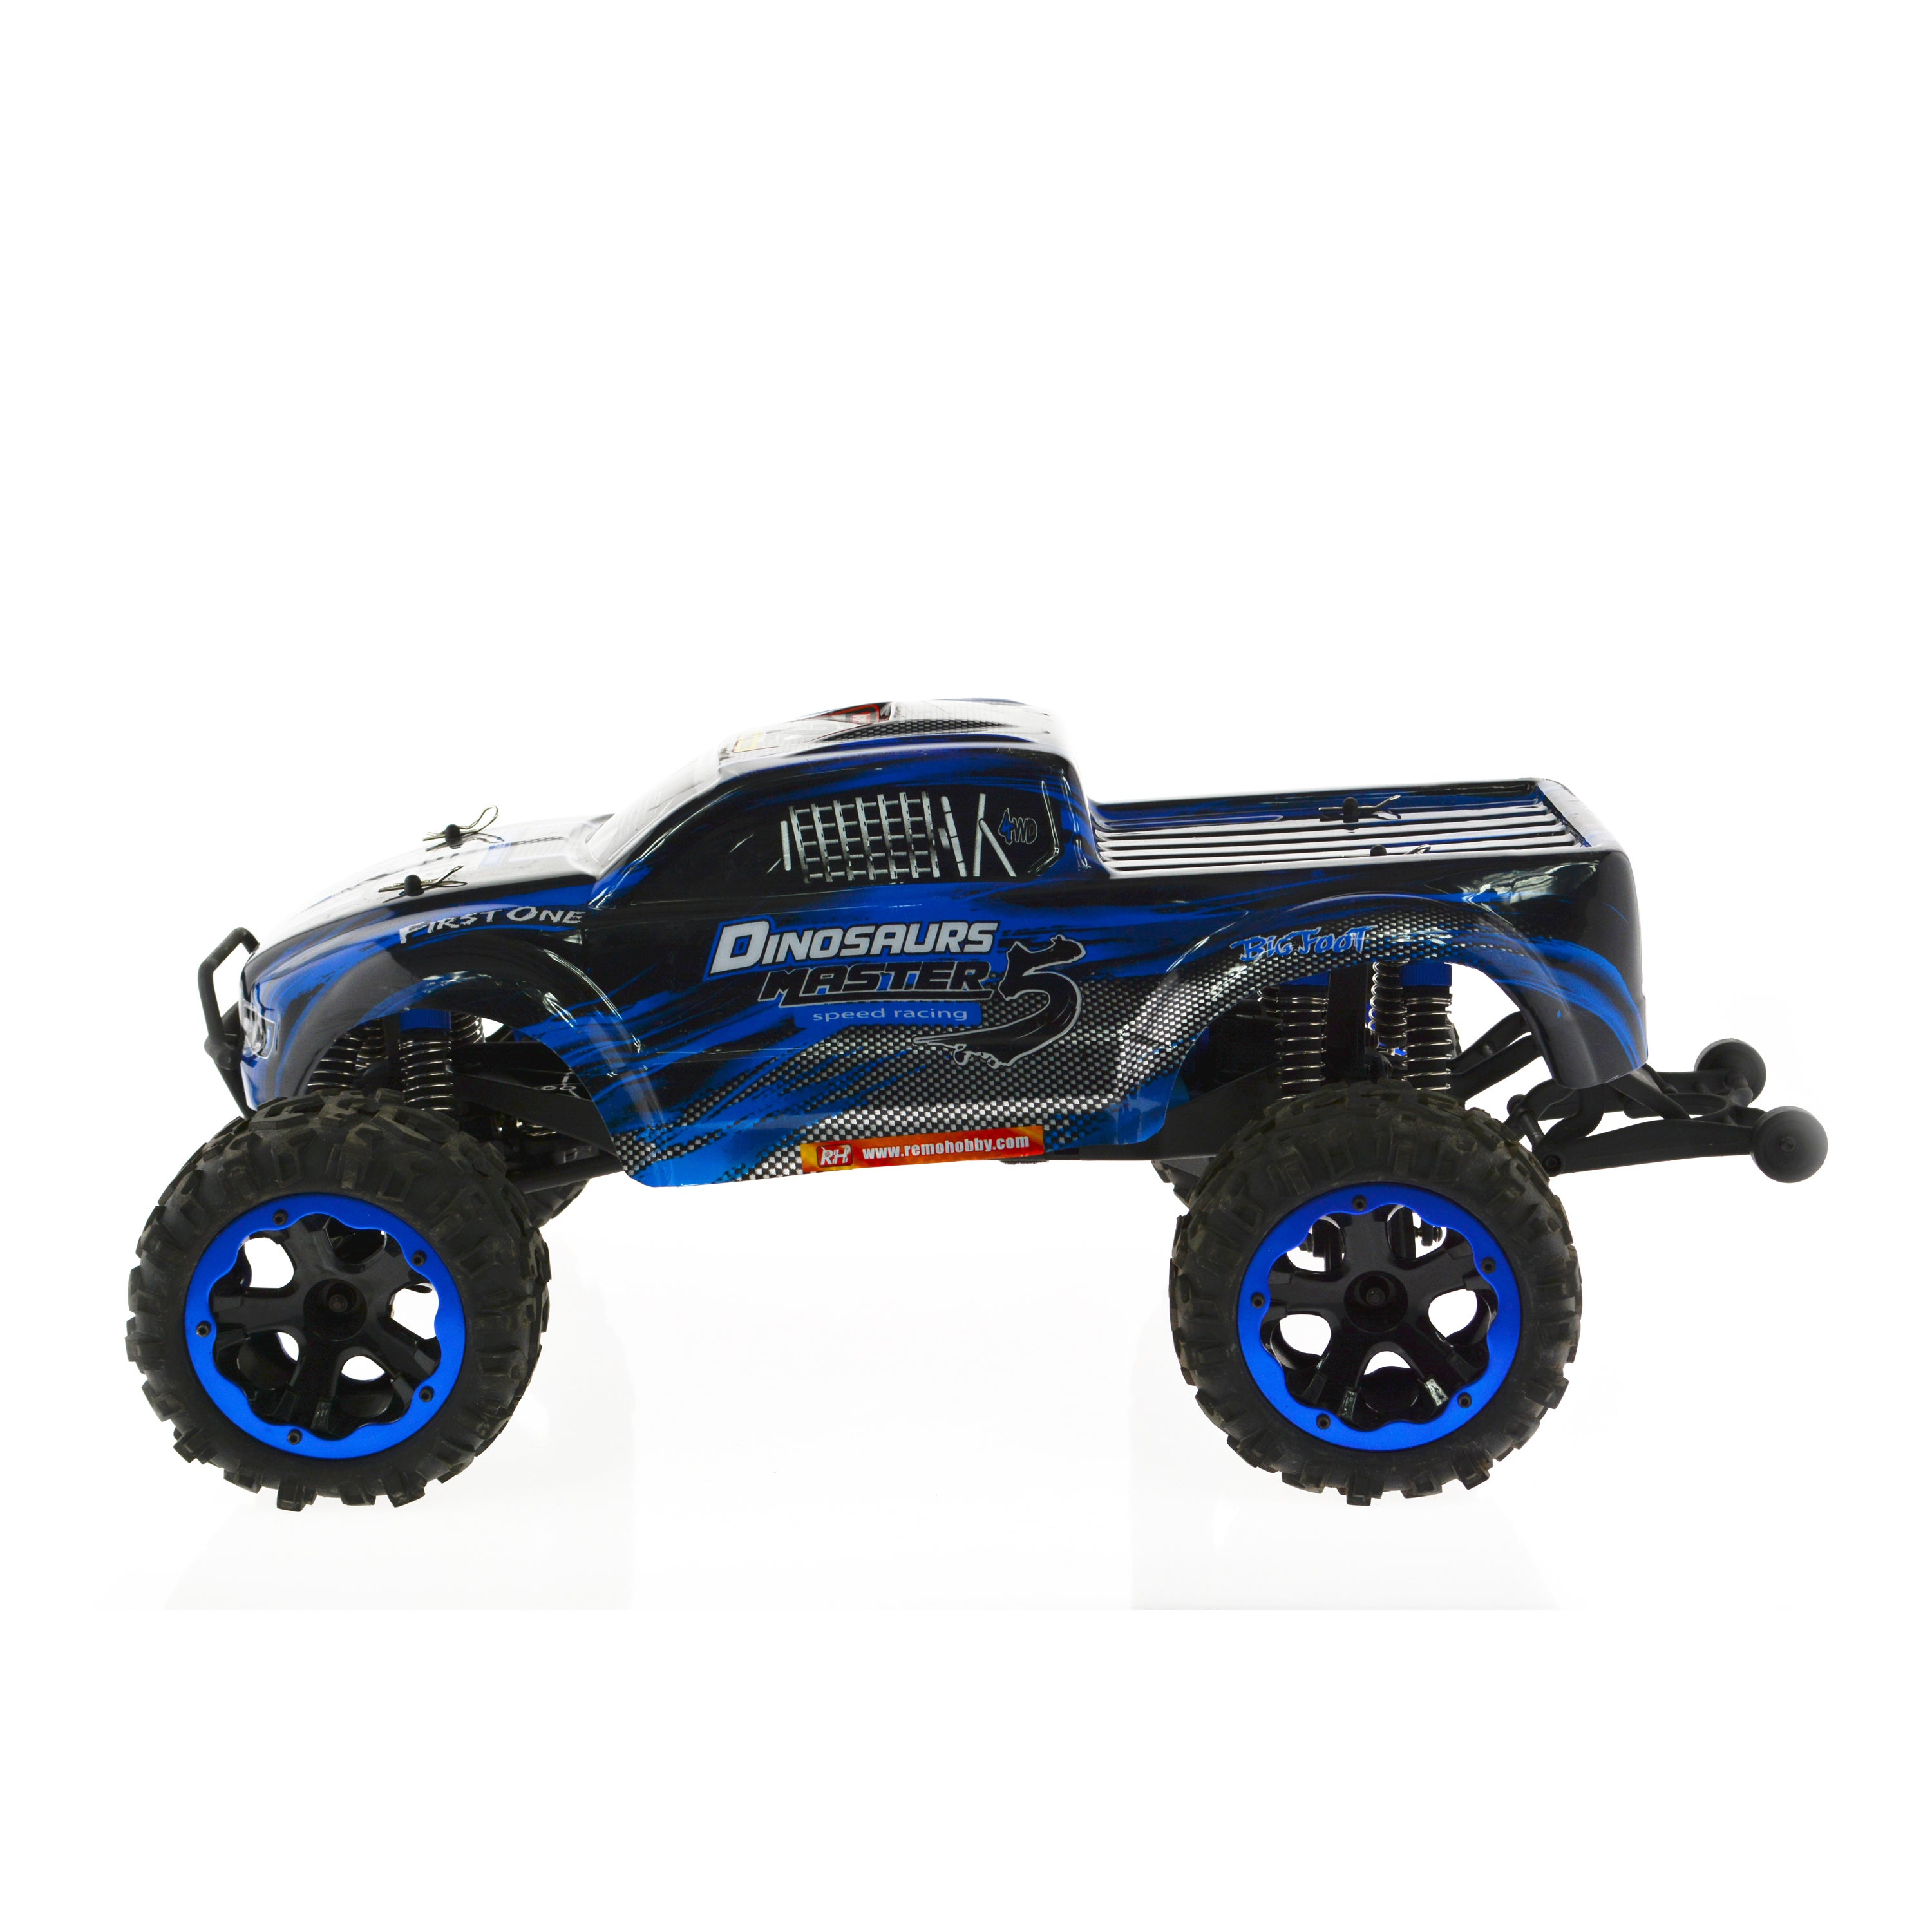 1/8 Scale Electric 4WD 2.4G RC Off-Road Dinosaurs Brushle...